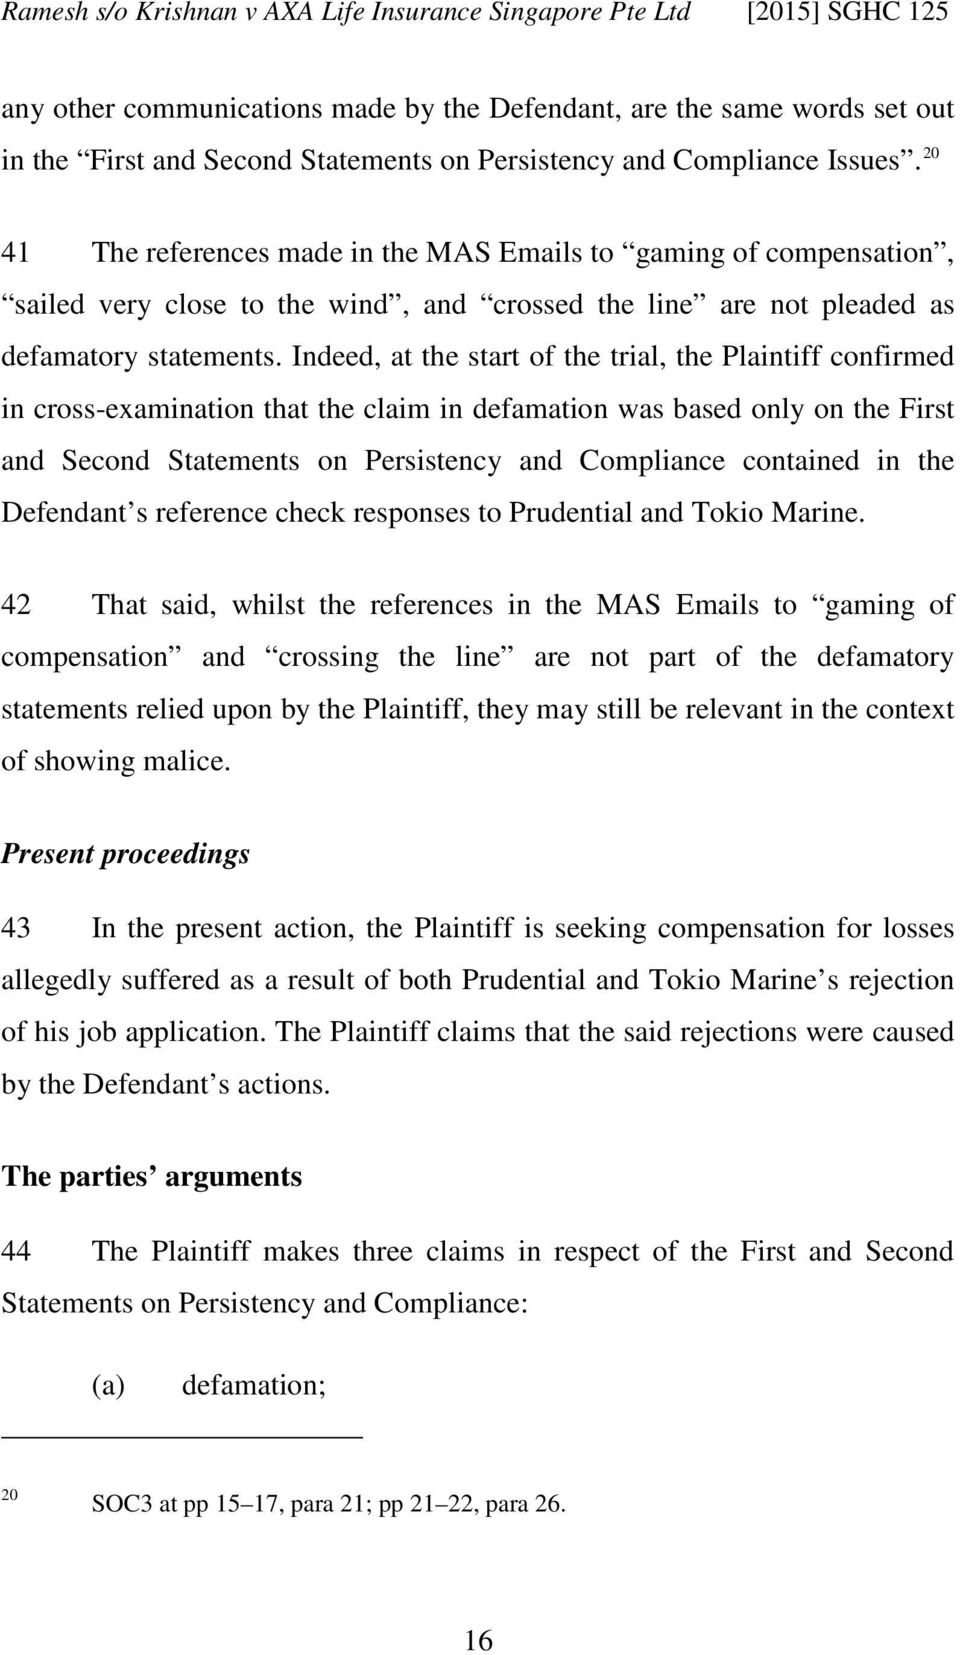 Indeed, at the start of the trial, the Plaintiff confirmed in cross-examination that the claim in defamation was based only on the First and Second Statements on Persistency and Compliance contained